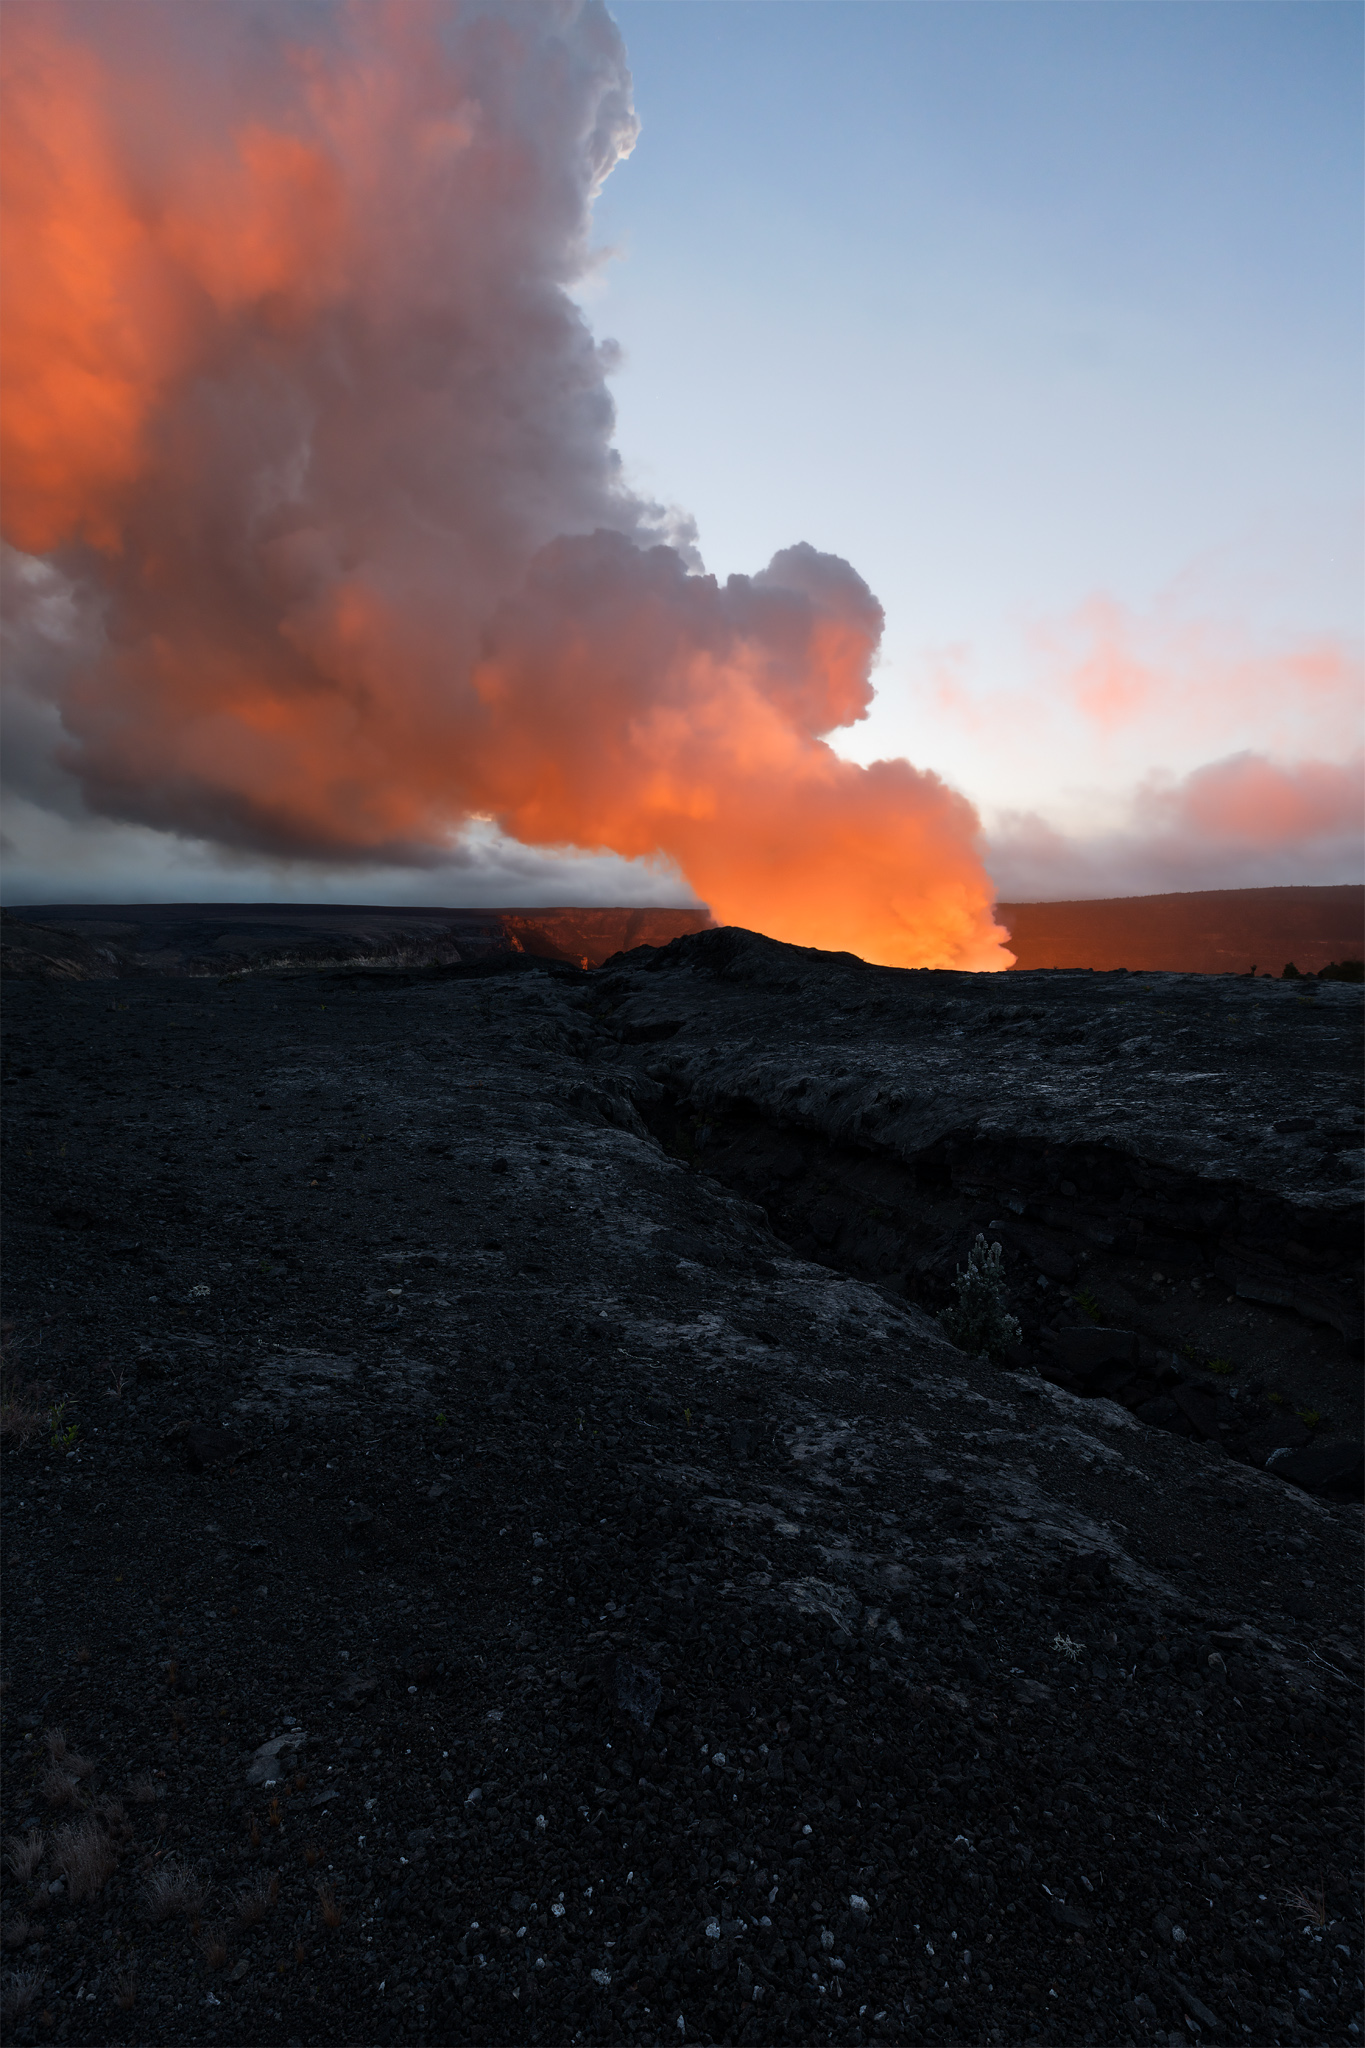 Halema'uma'u fiery glow was the main attraction at Volcano National Park and was greatly missed since its deflation in 2018....